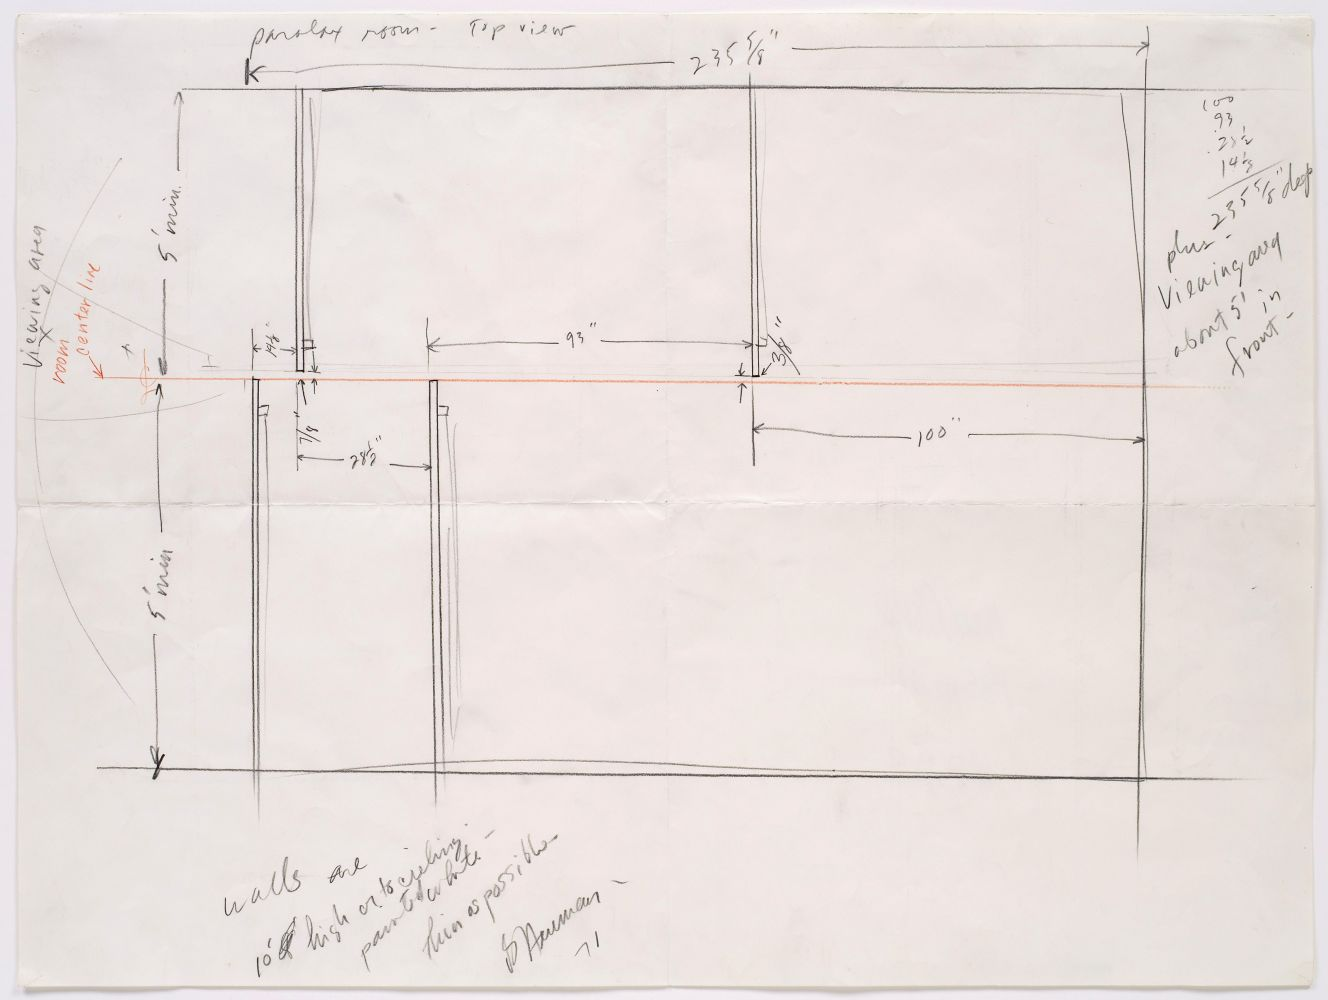 graphite and colored pencil drawing of an installation plan with handwritten notes by the artist